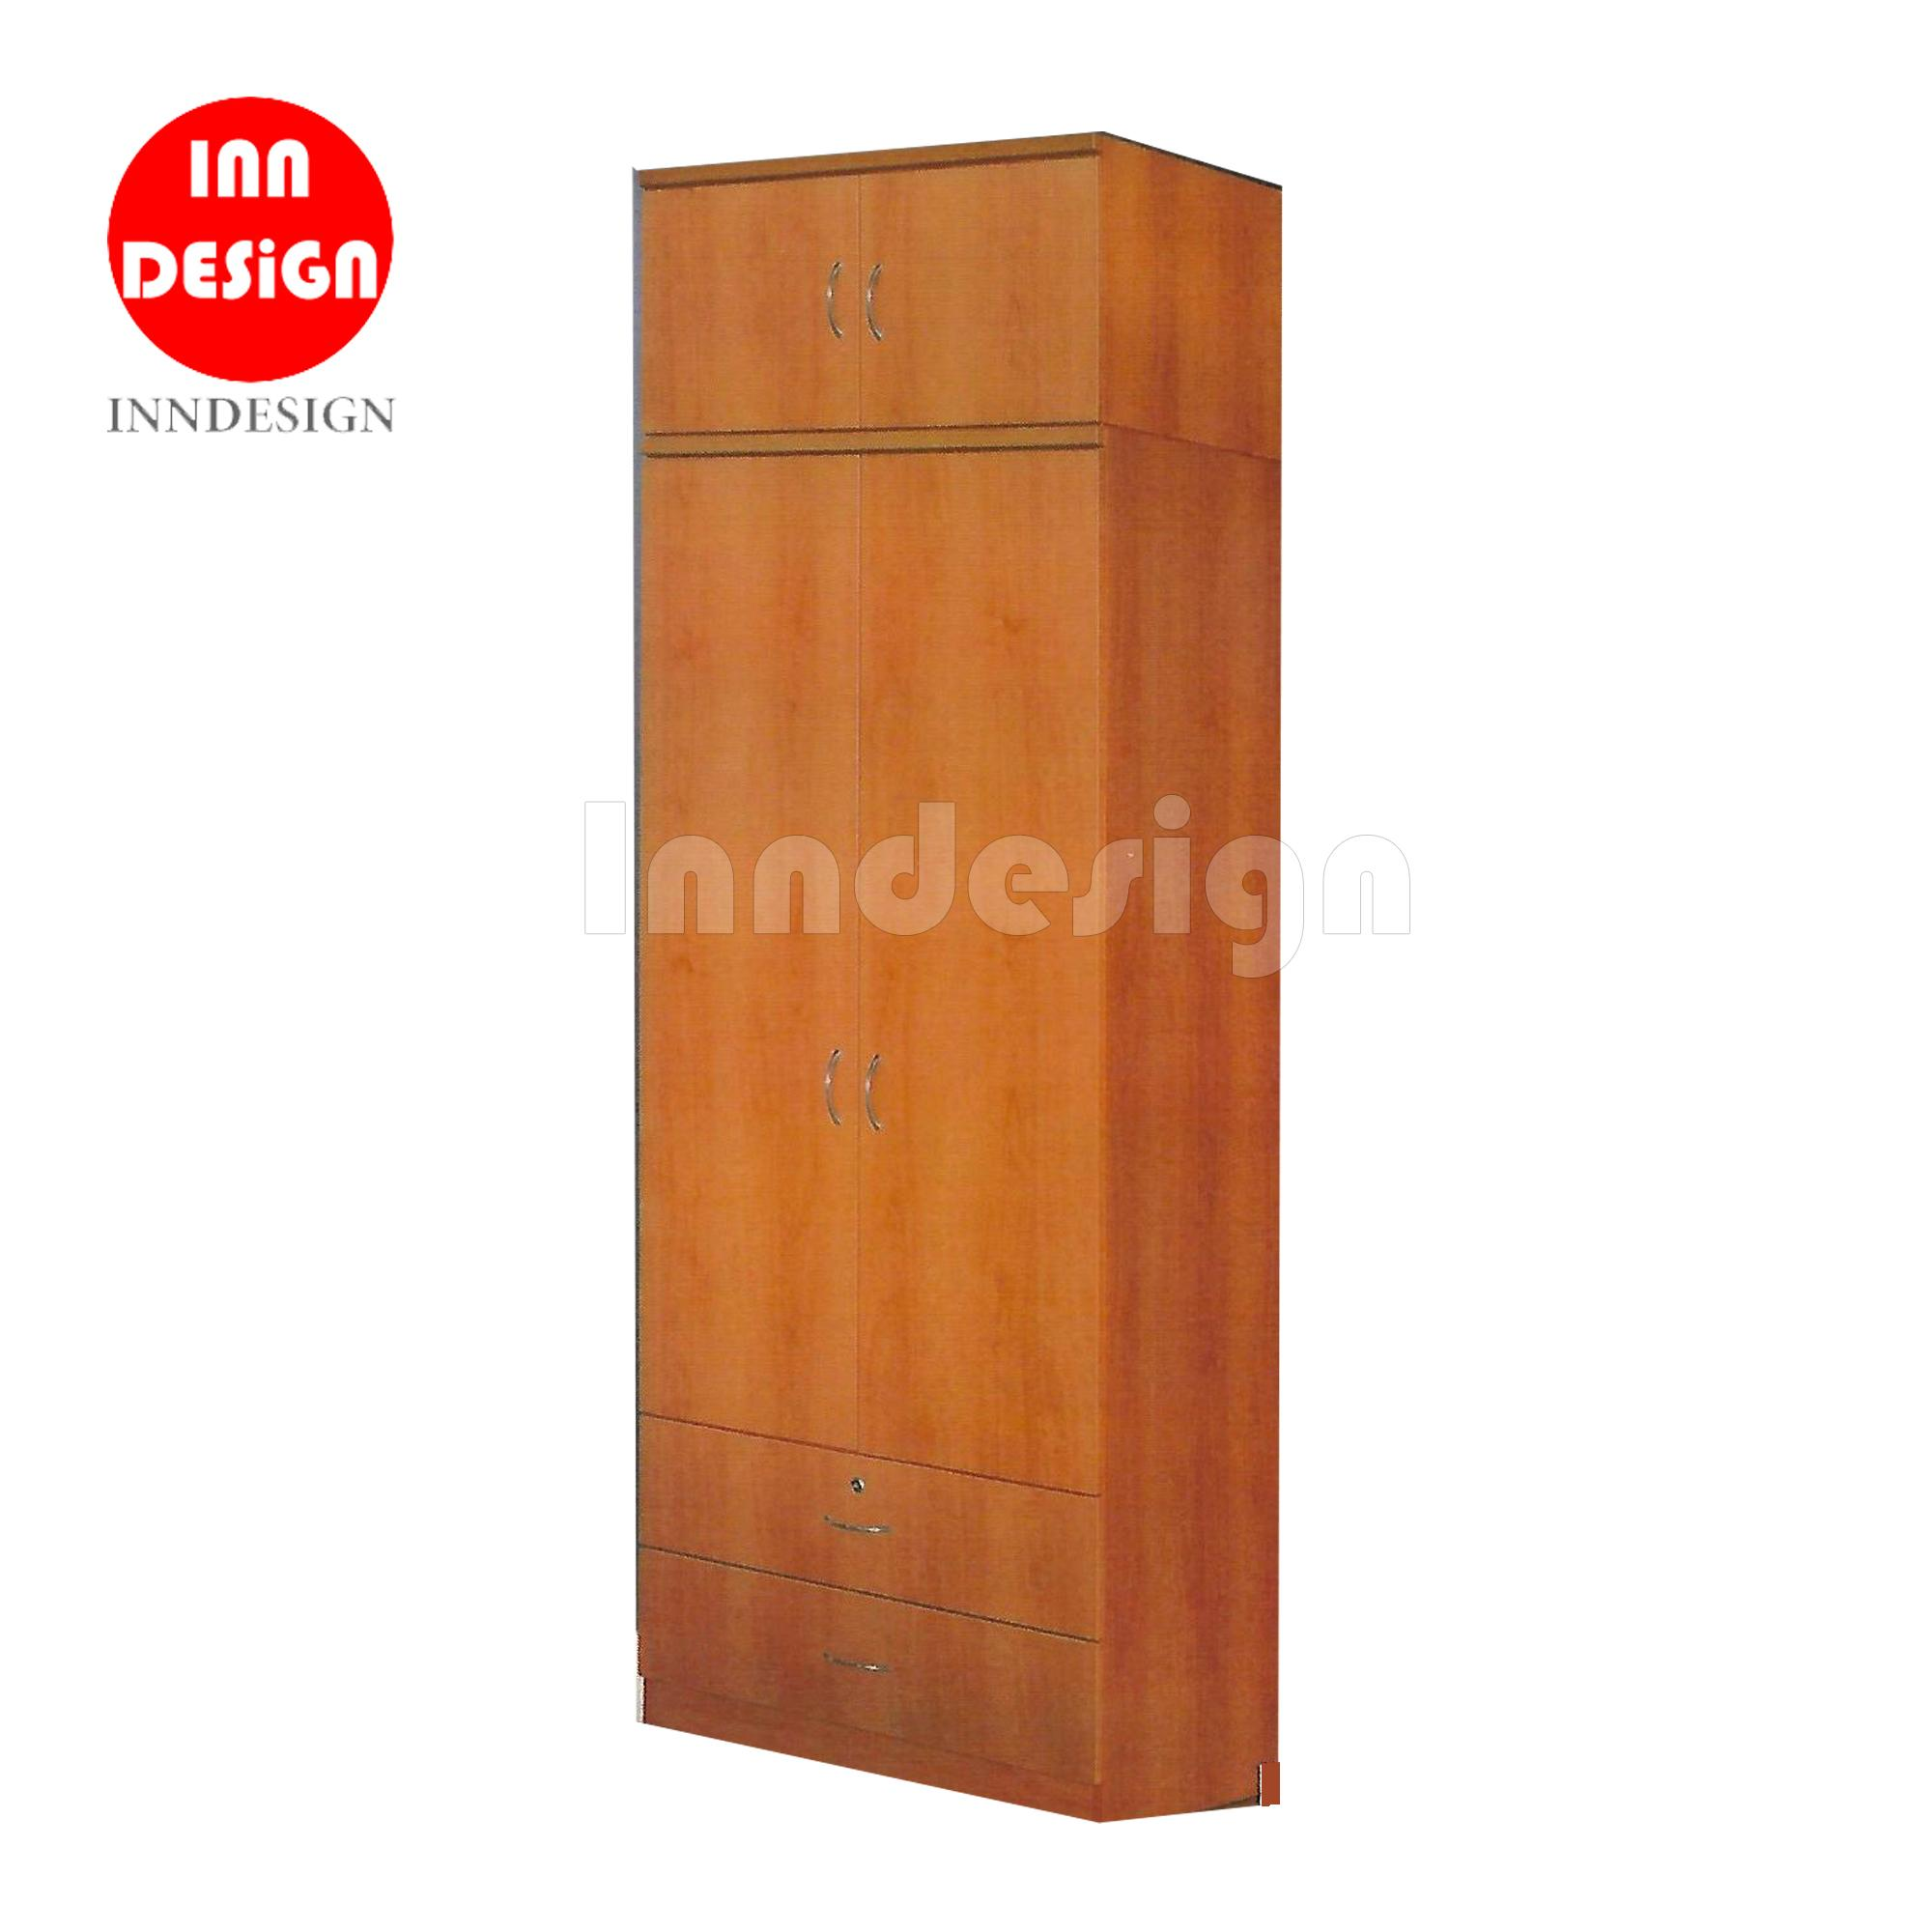 Victo 2 Doors Wardrobe with Top and Drawers